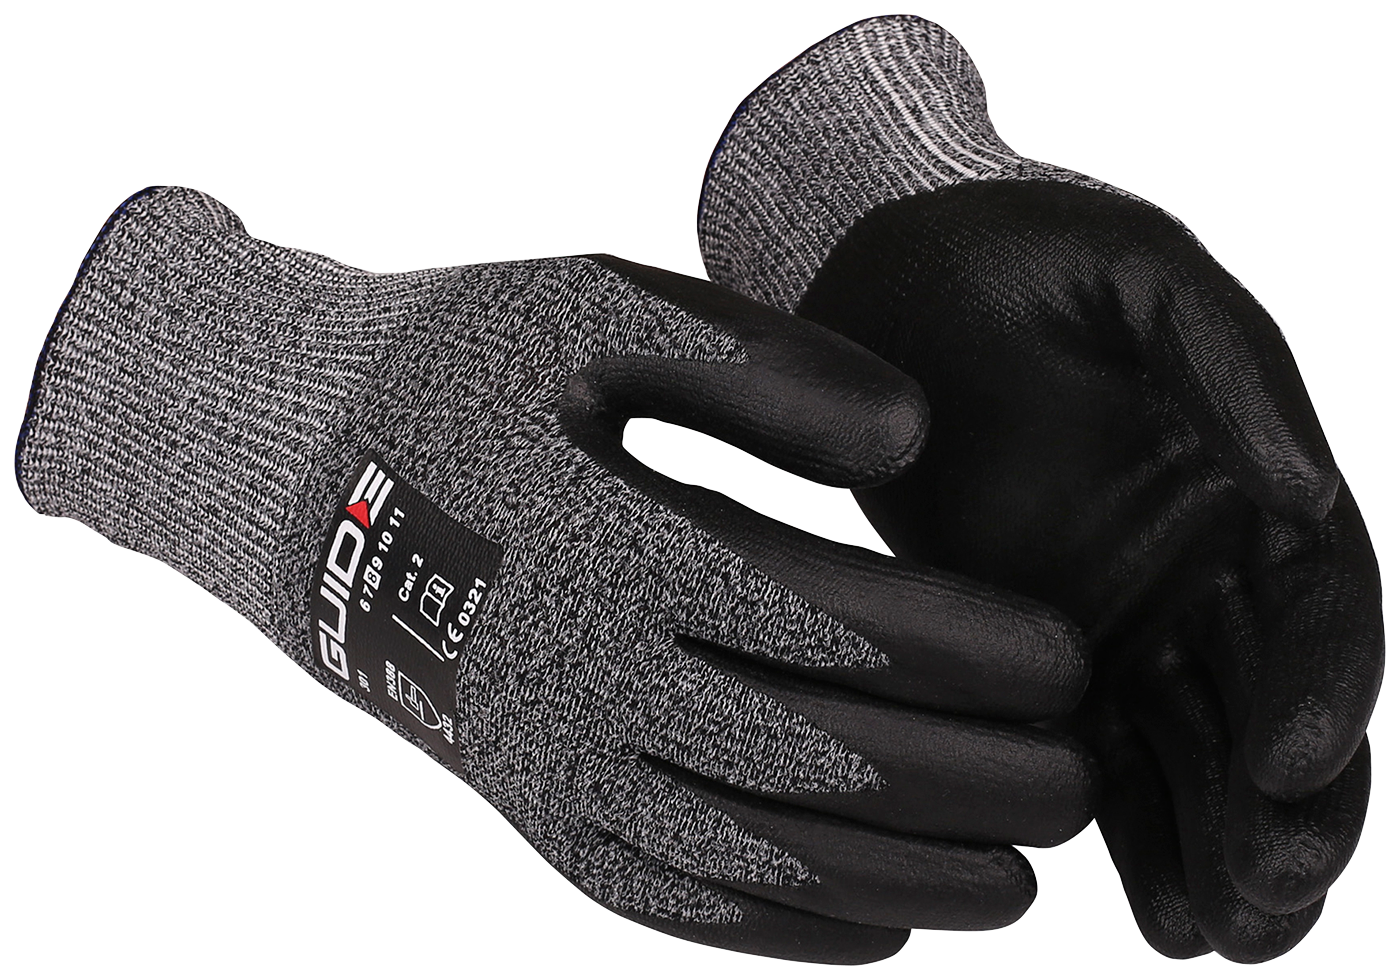 Cut Protection Glove GUIDE 301